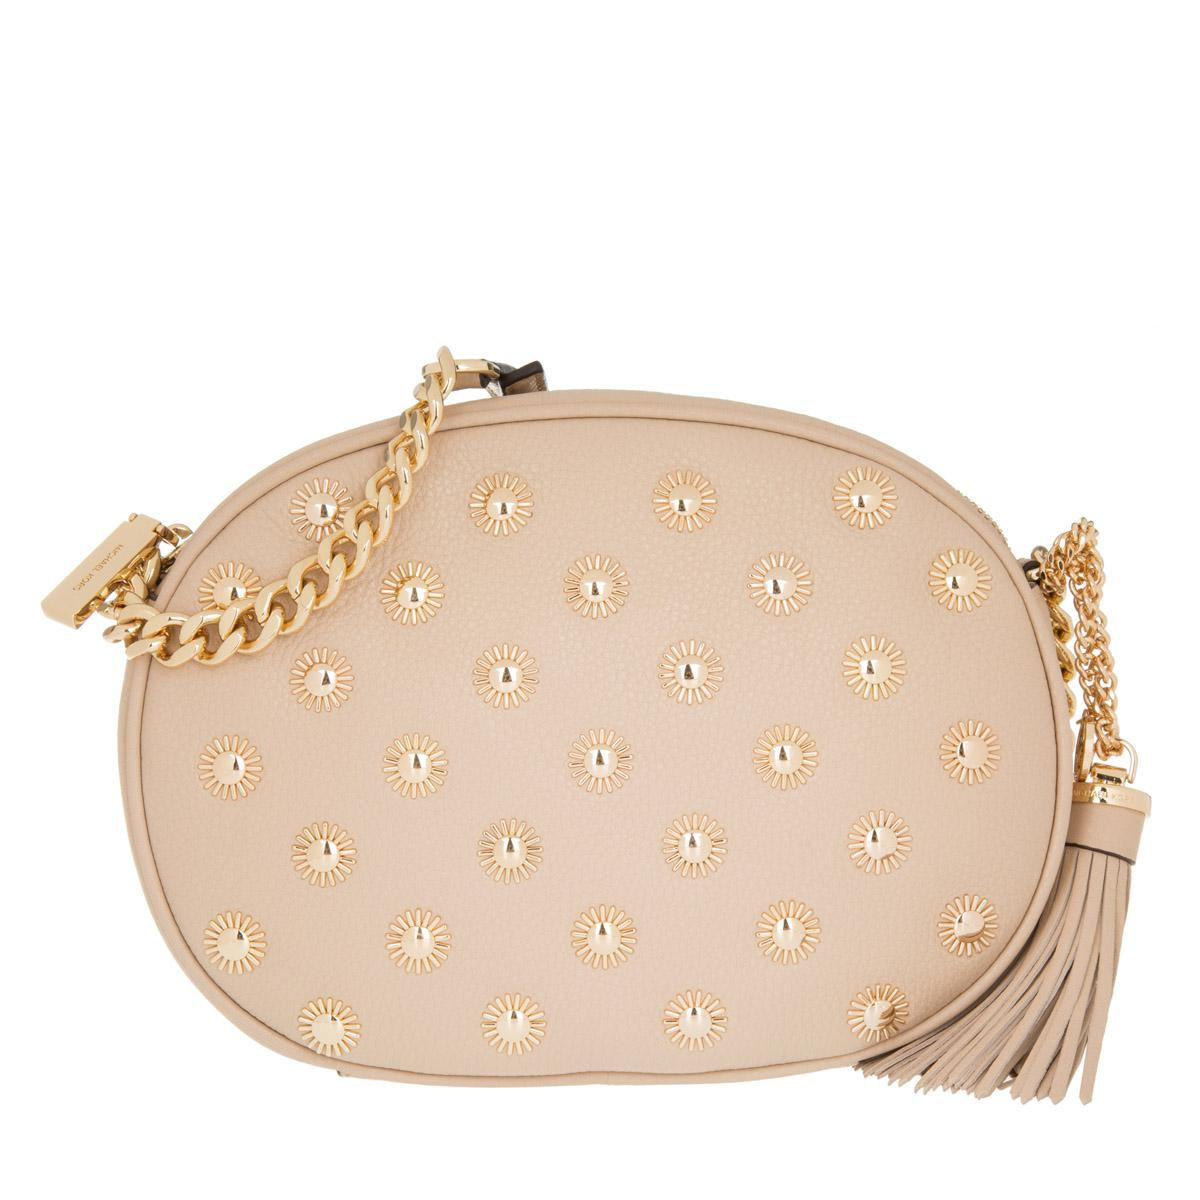 53538c5ac4dd Gallery. Previously sold at: Fashionette · Women's Michael Kors ...